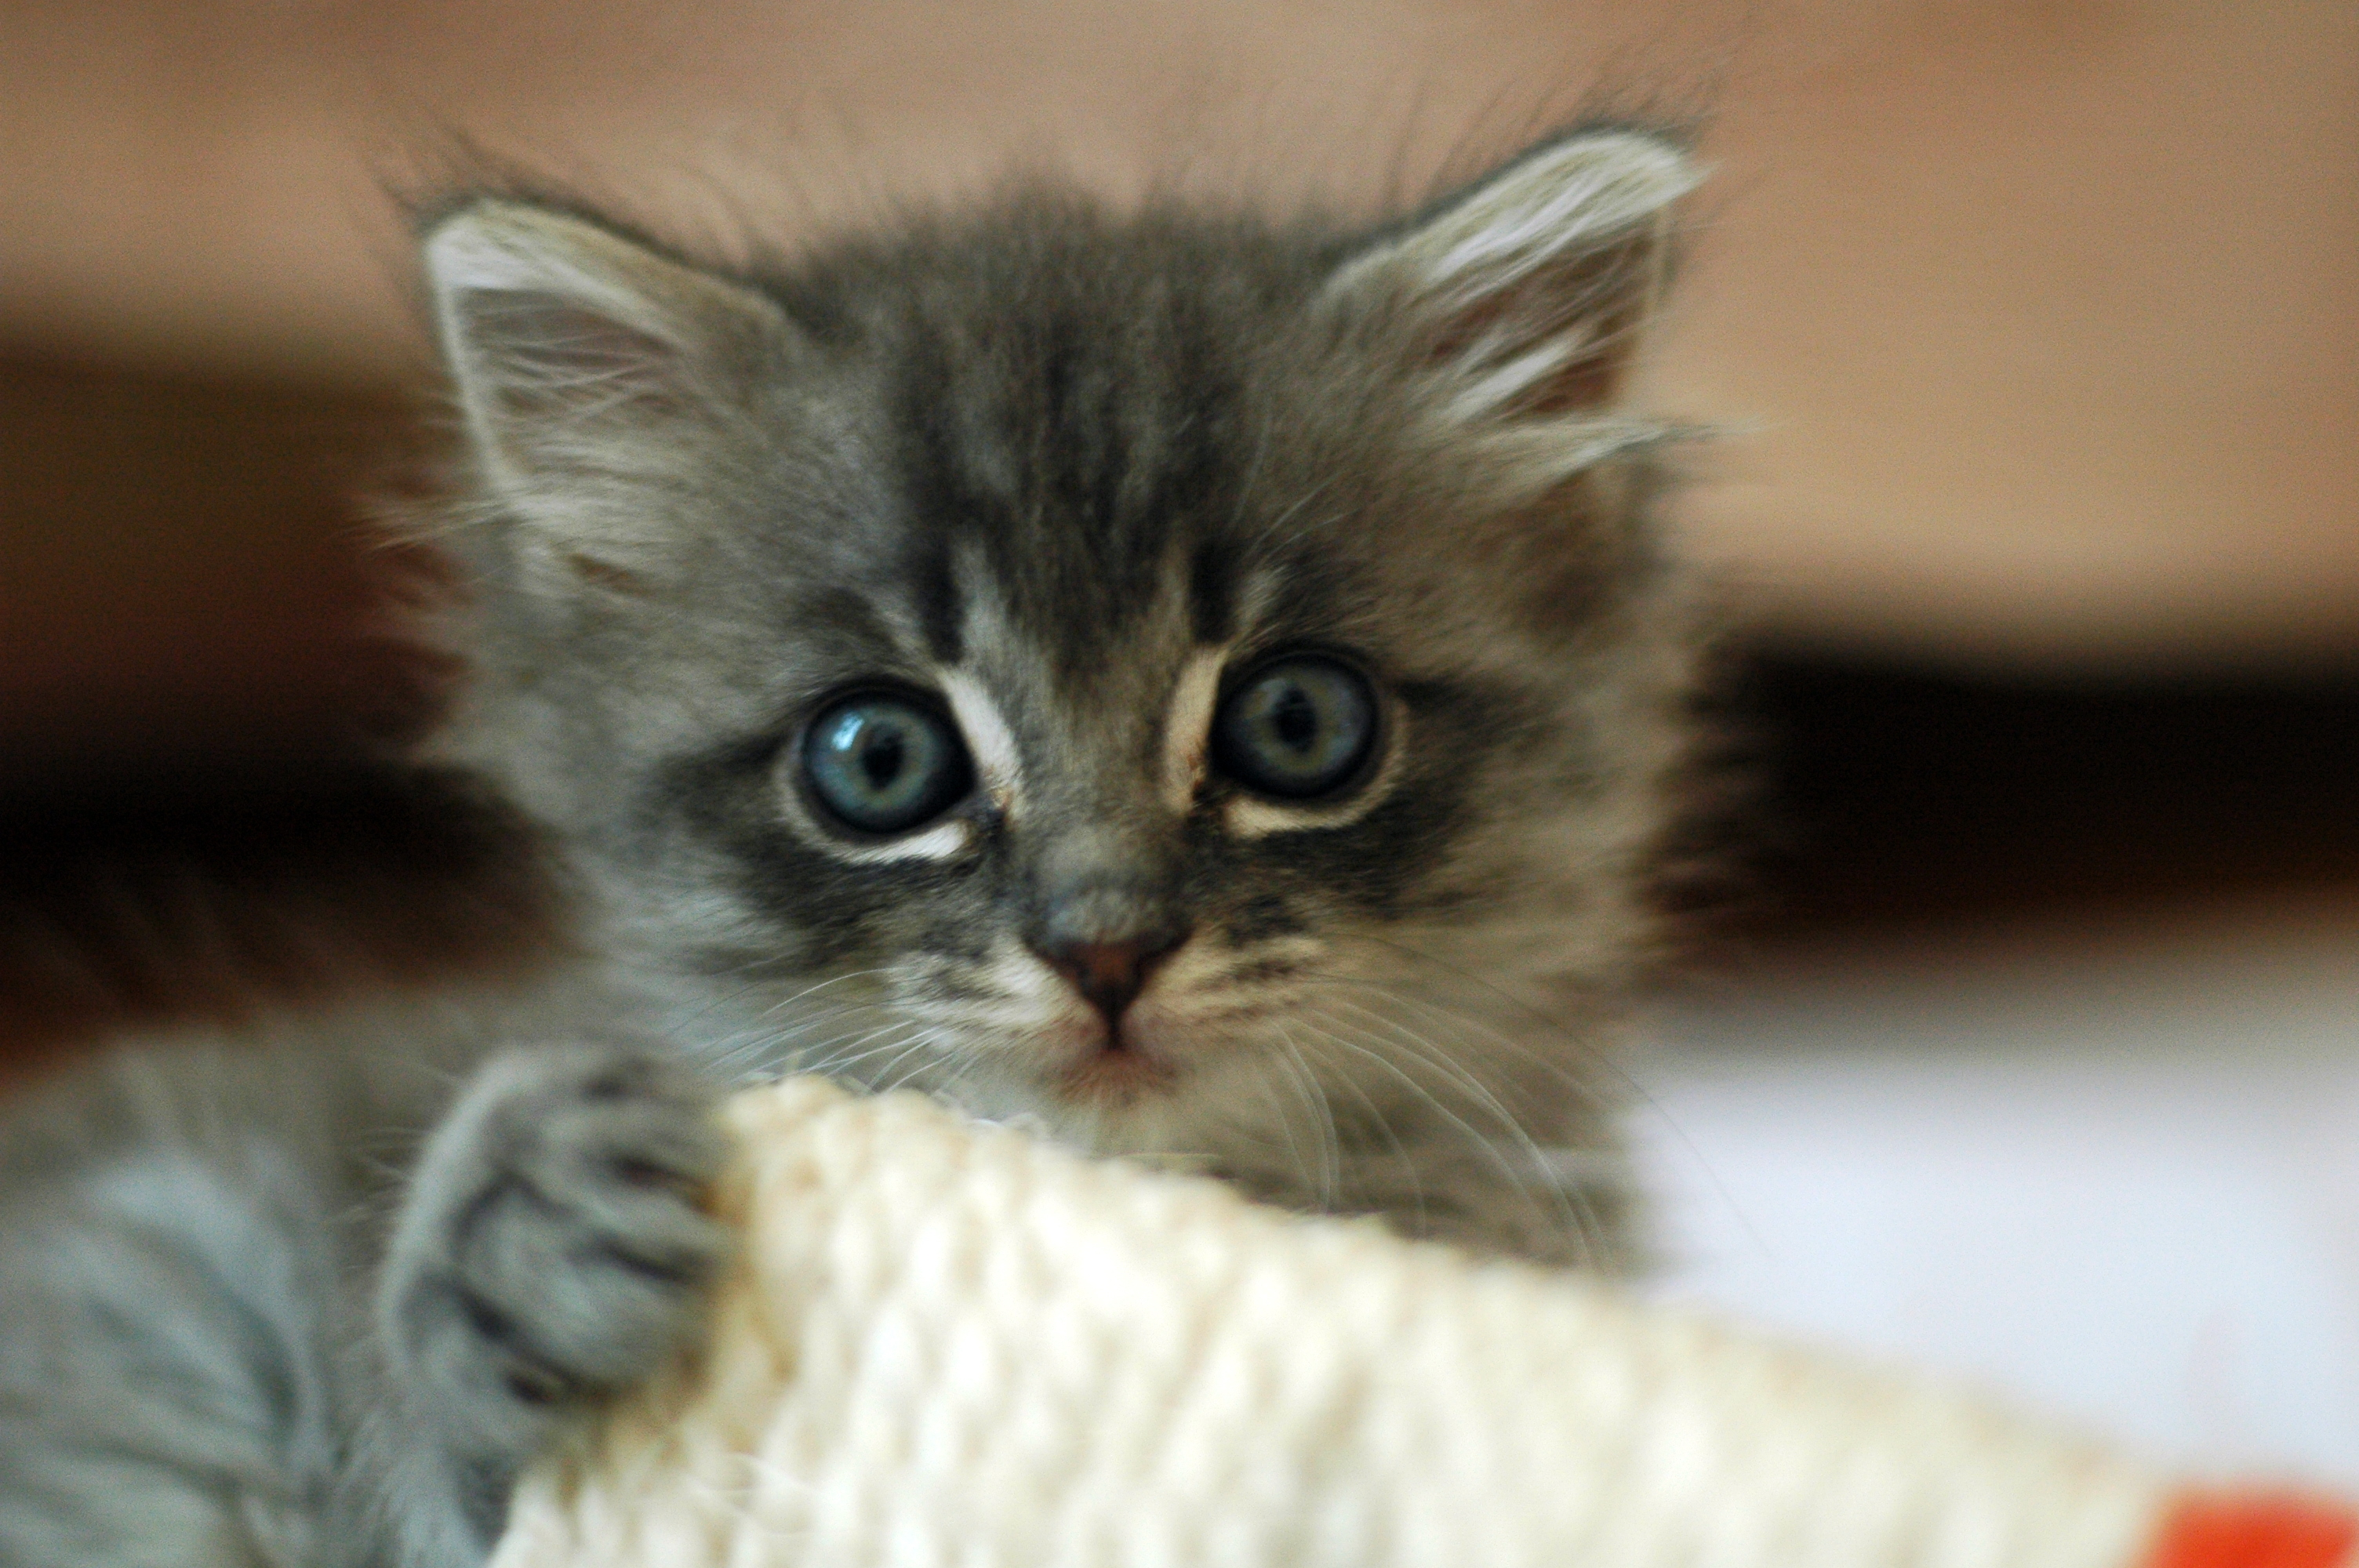 File:Cute grey kitten.jpg - Wikimedia Commons